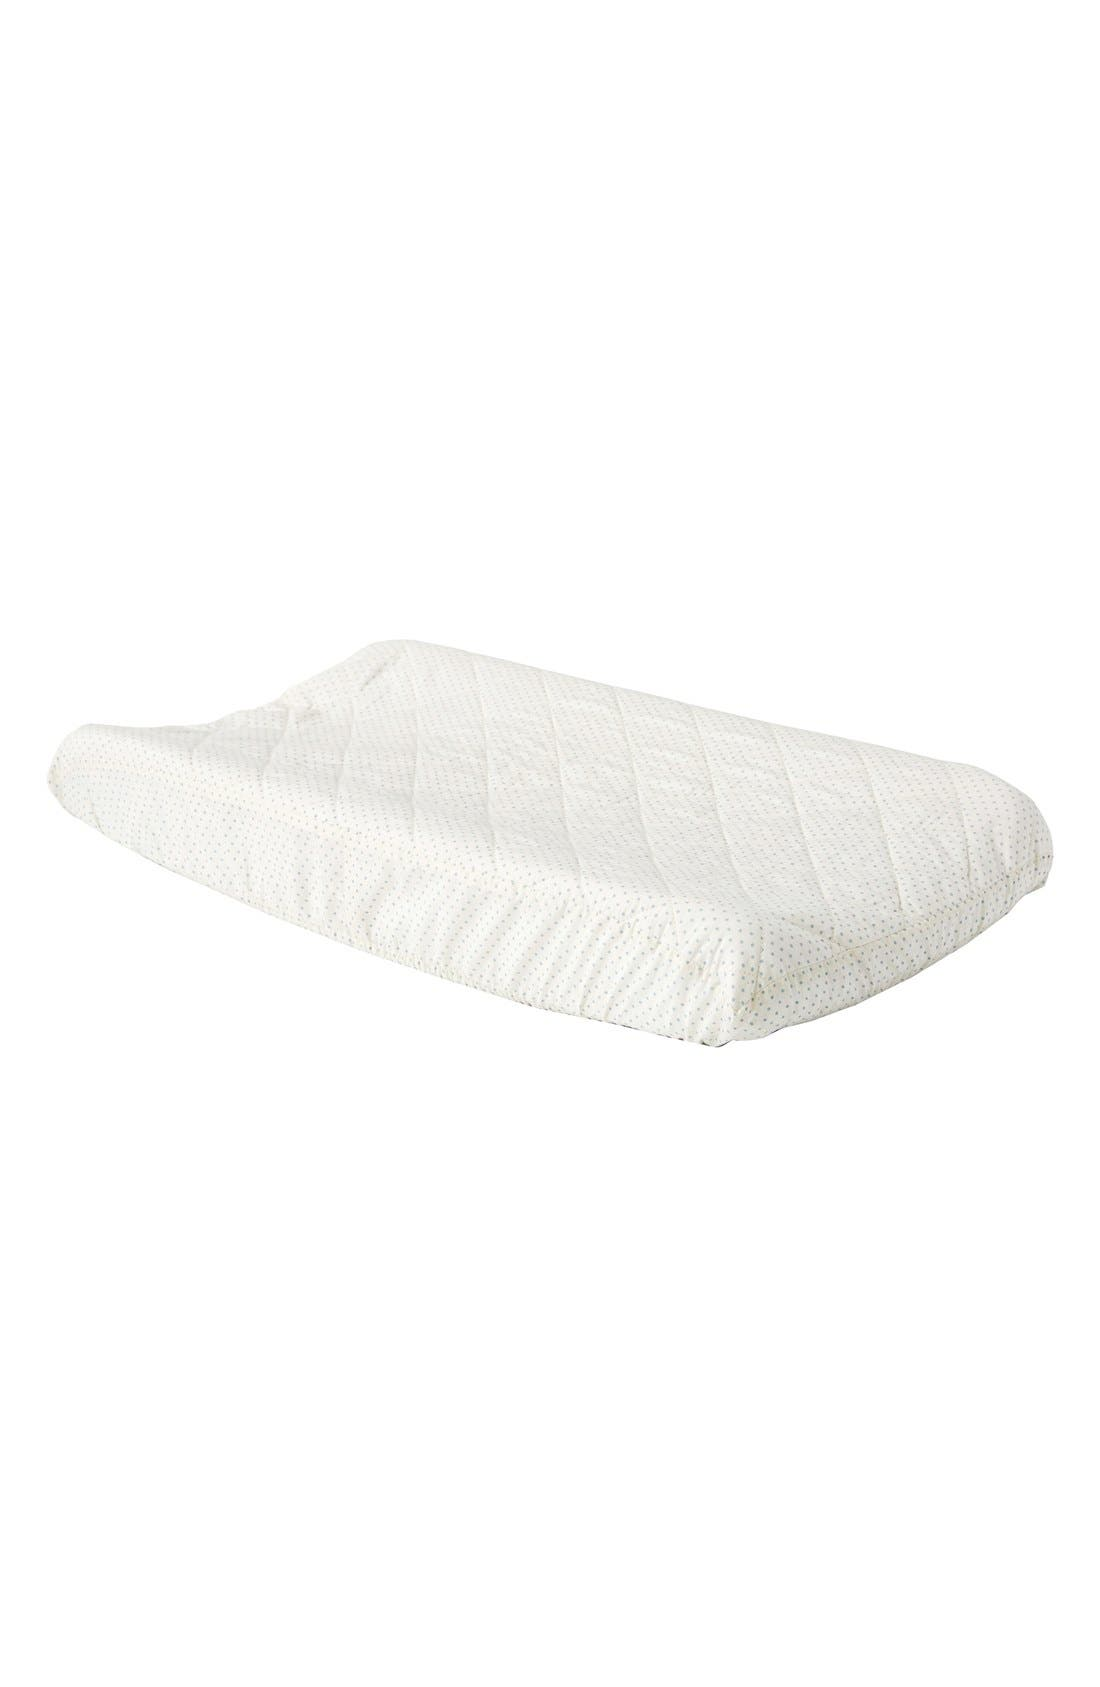 Brushed Cotton Changing Pad Cover,                         Main,                         color, Blue